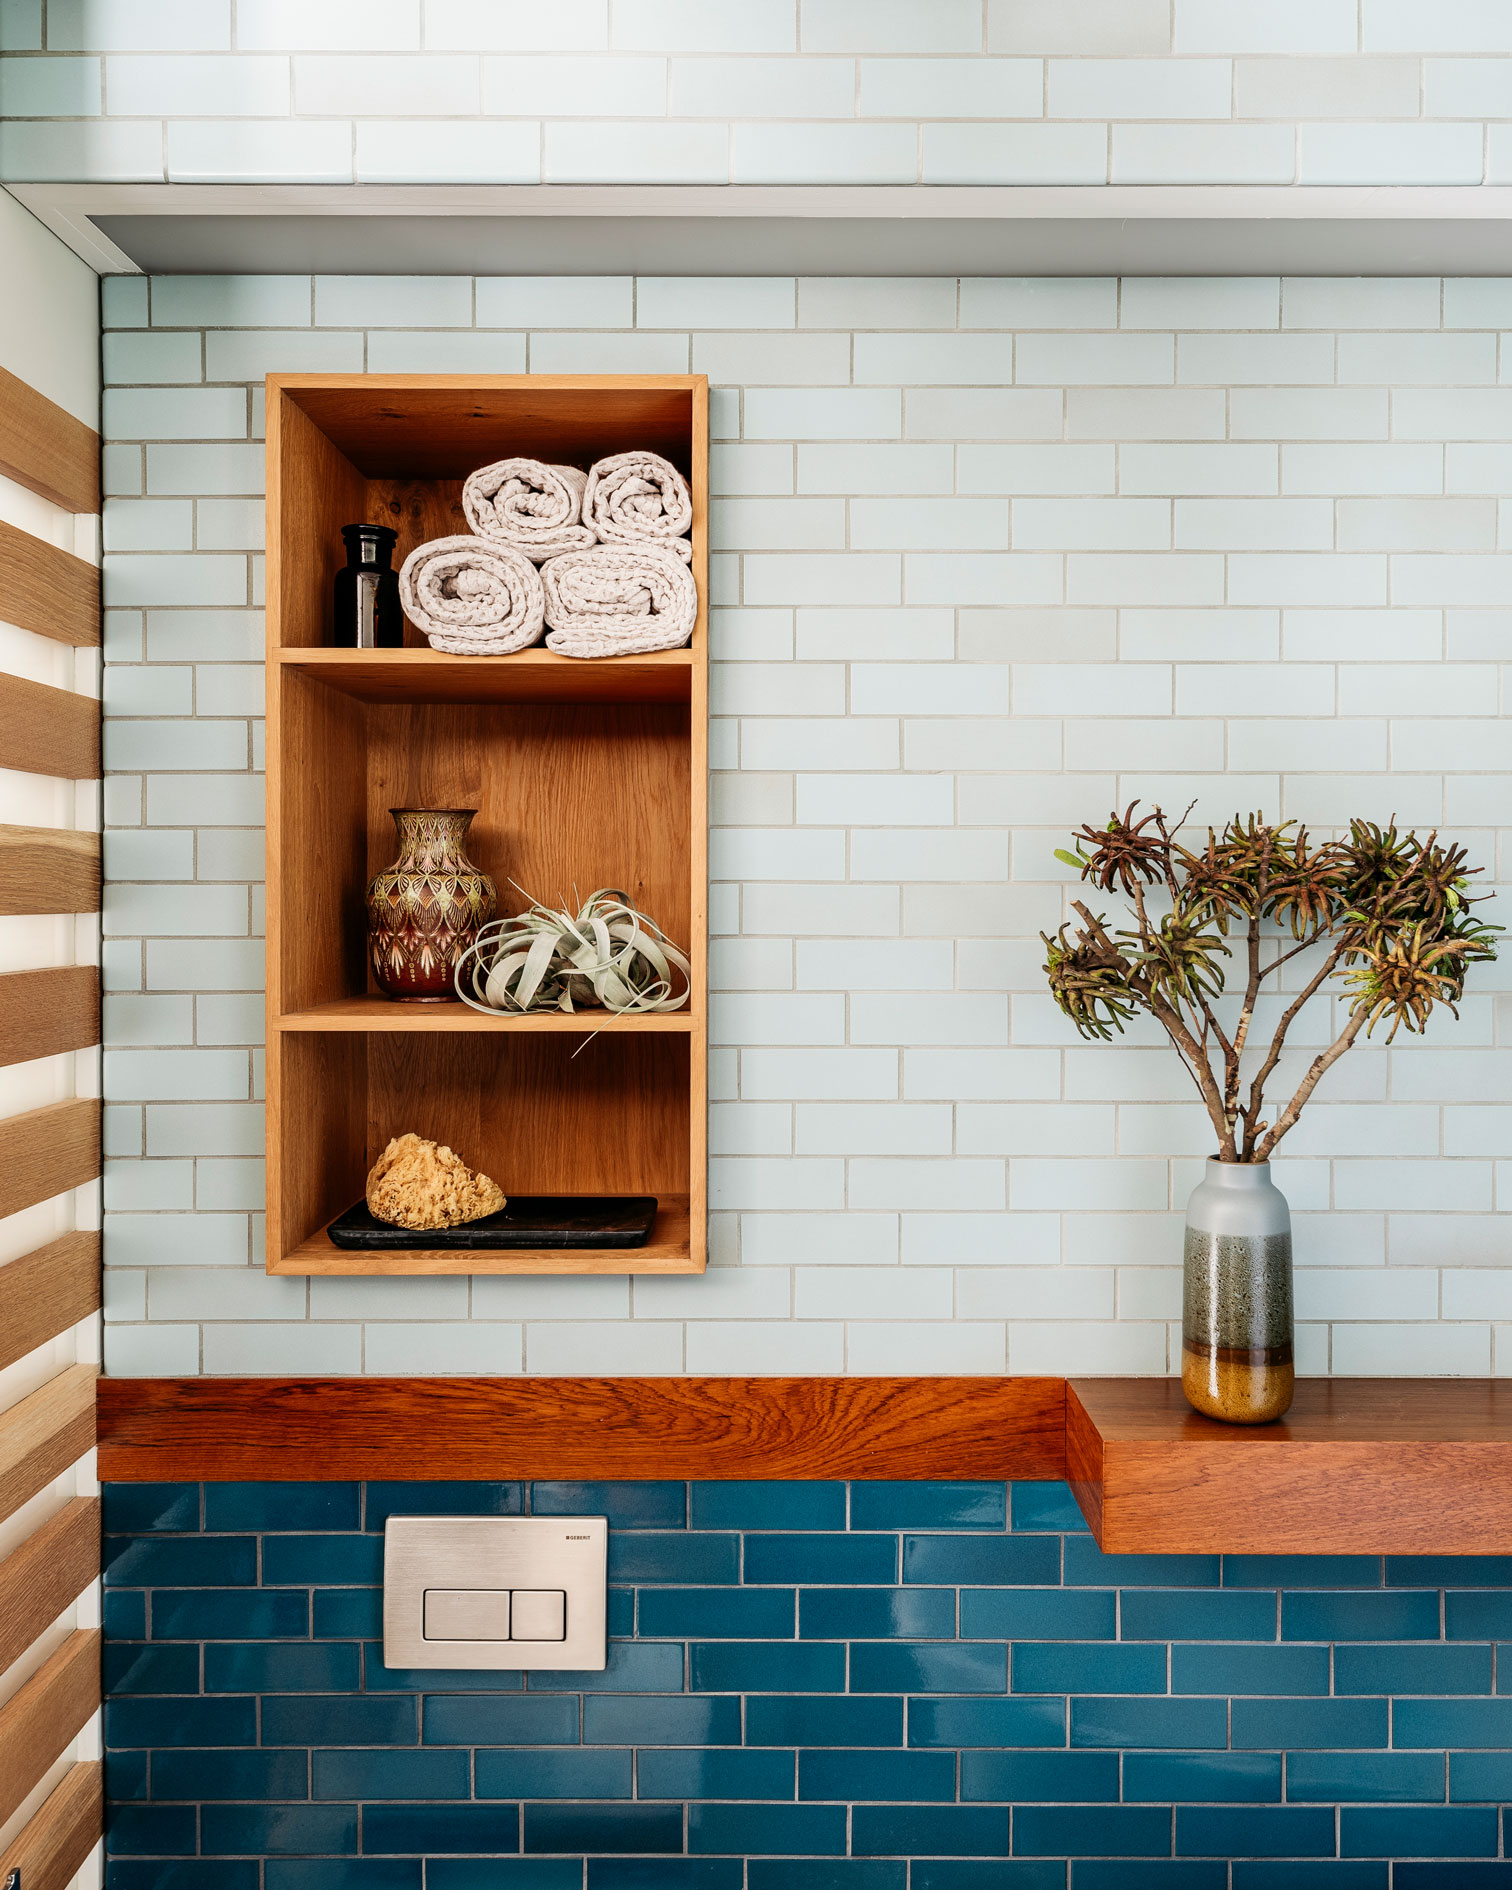 Murdock designed niches throughout the space for storage and decorative purposes.